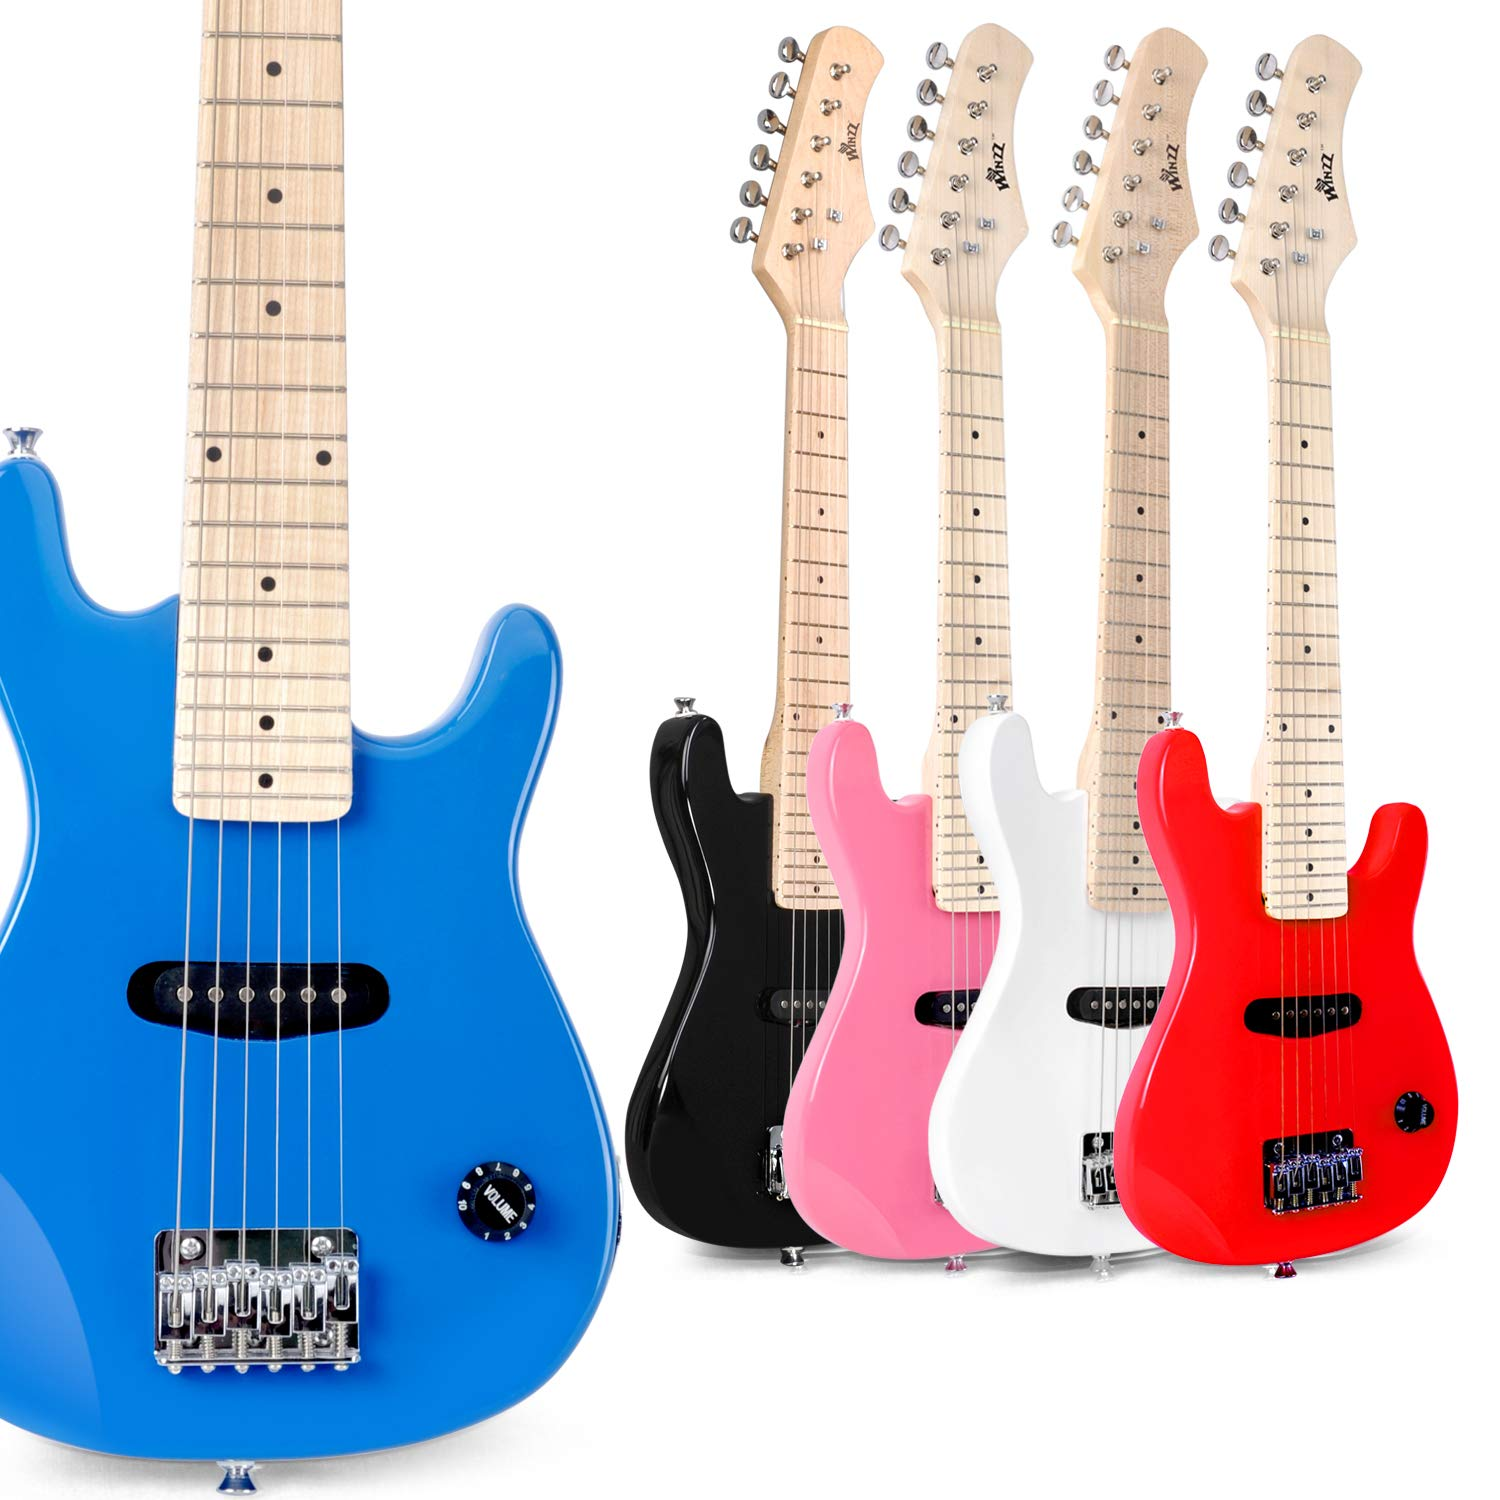 B07L648MQ6 WINZZ 30 Inches Real Kids Electric Guitar with Beginner Kit, Blue 71TuUpHUHLL